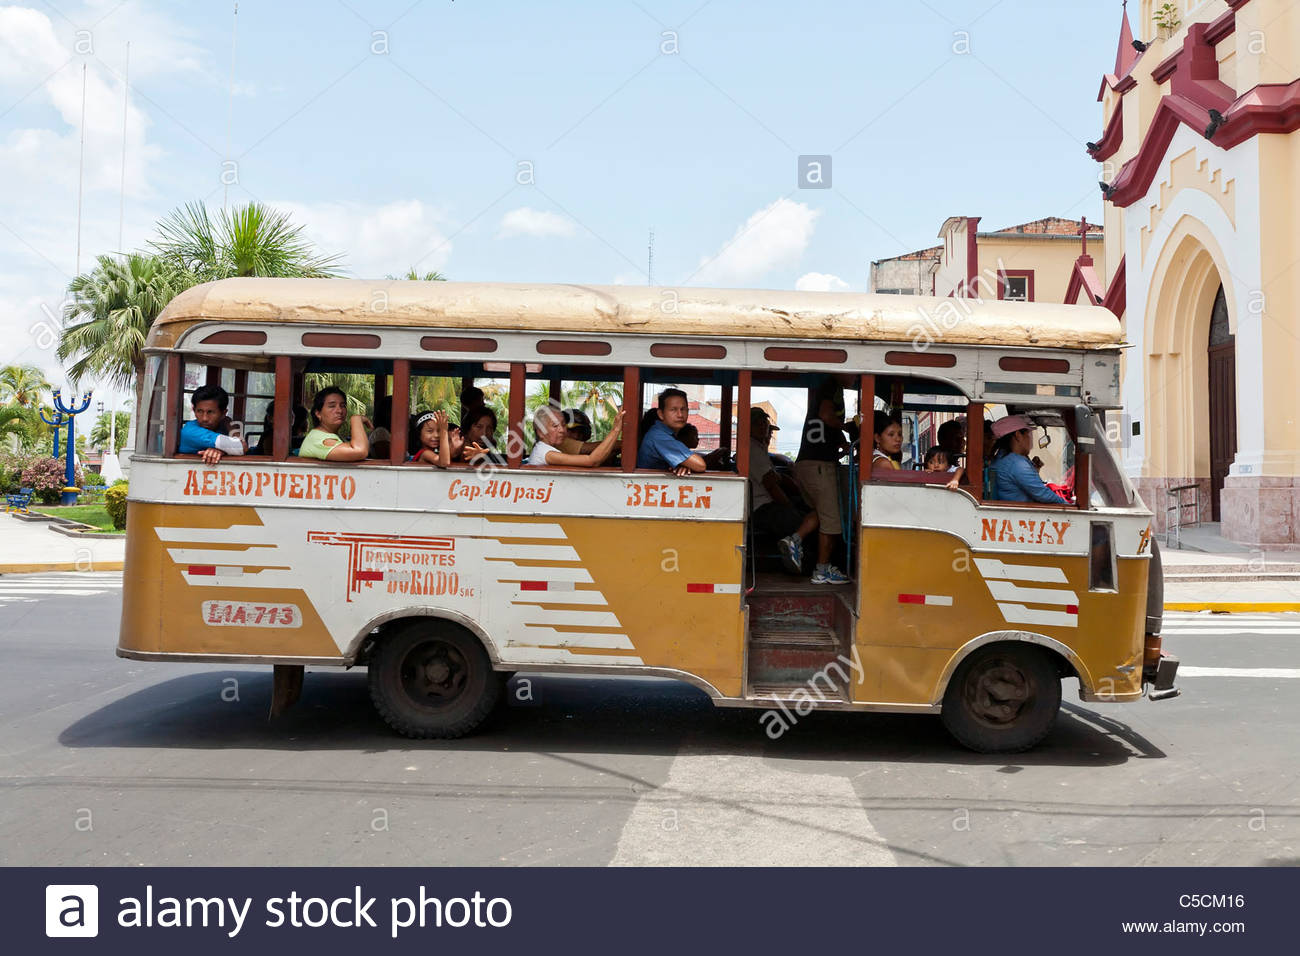 Small bus serving as public transportation in Iquitos, Loreto, Peru - Stock Image